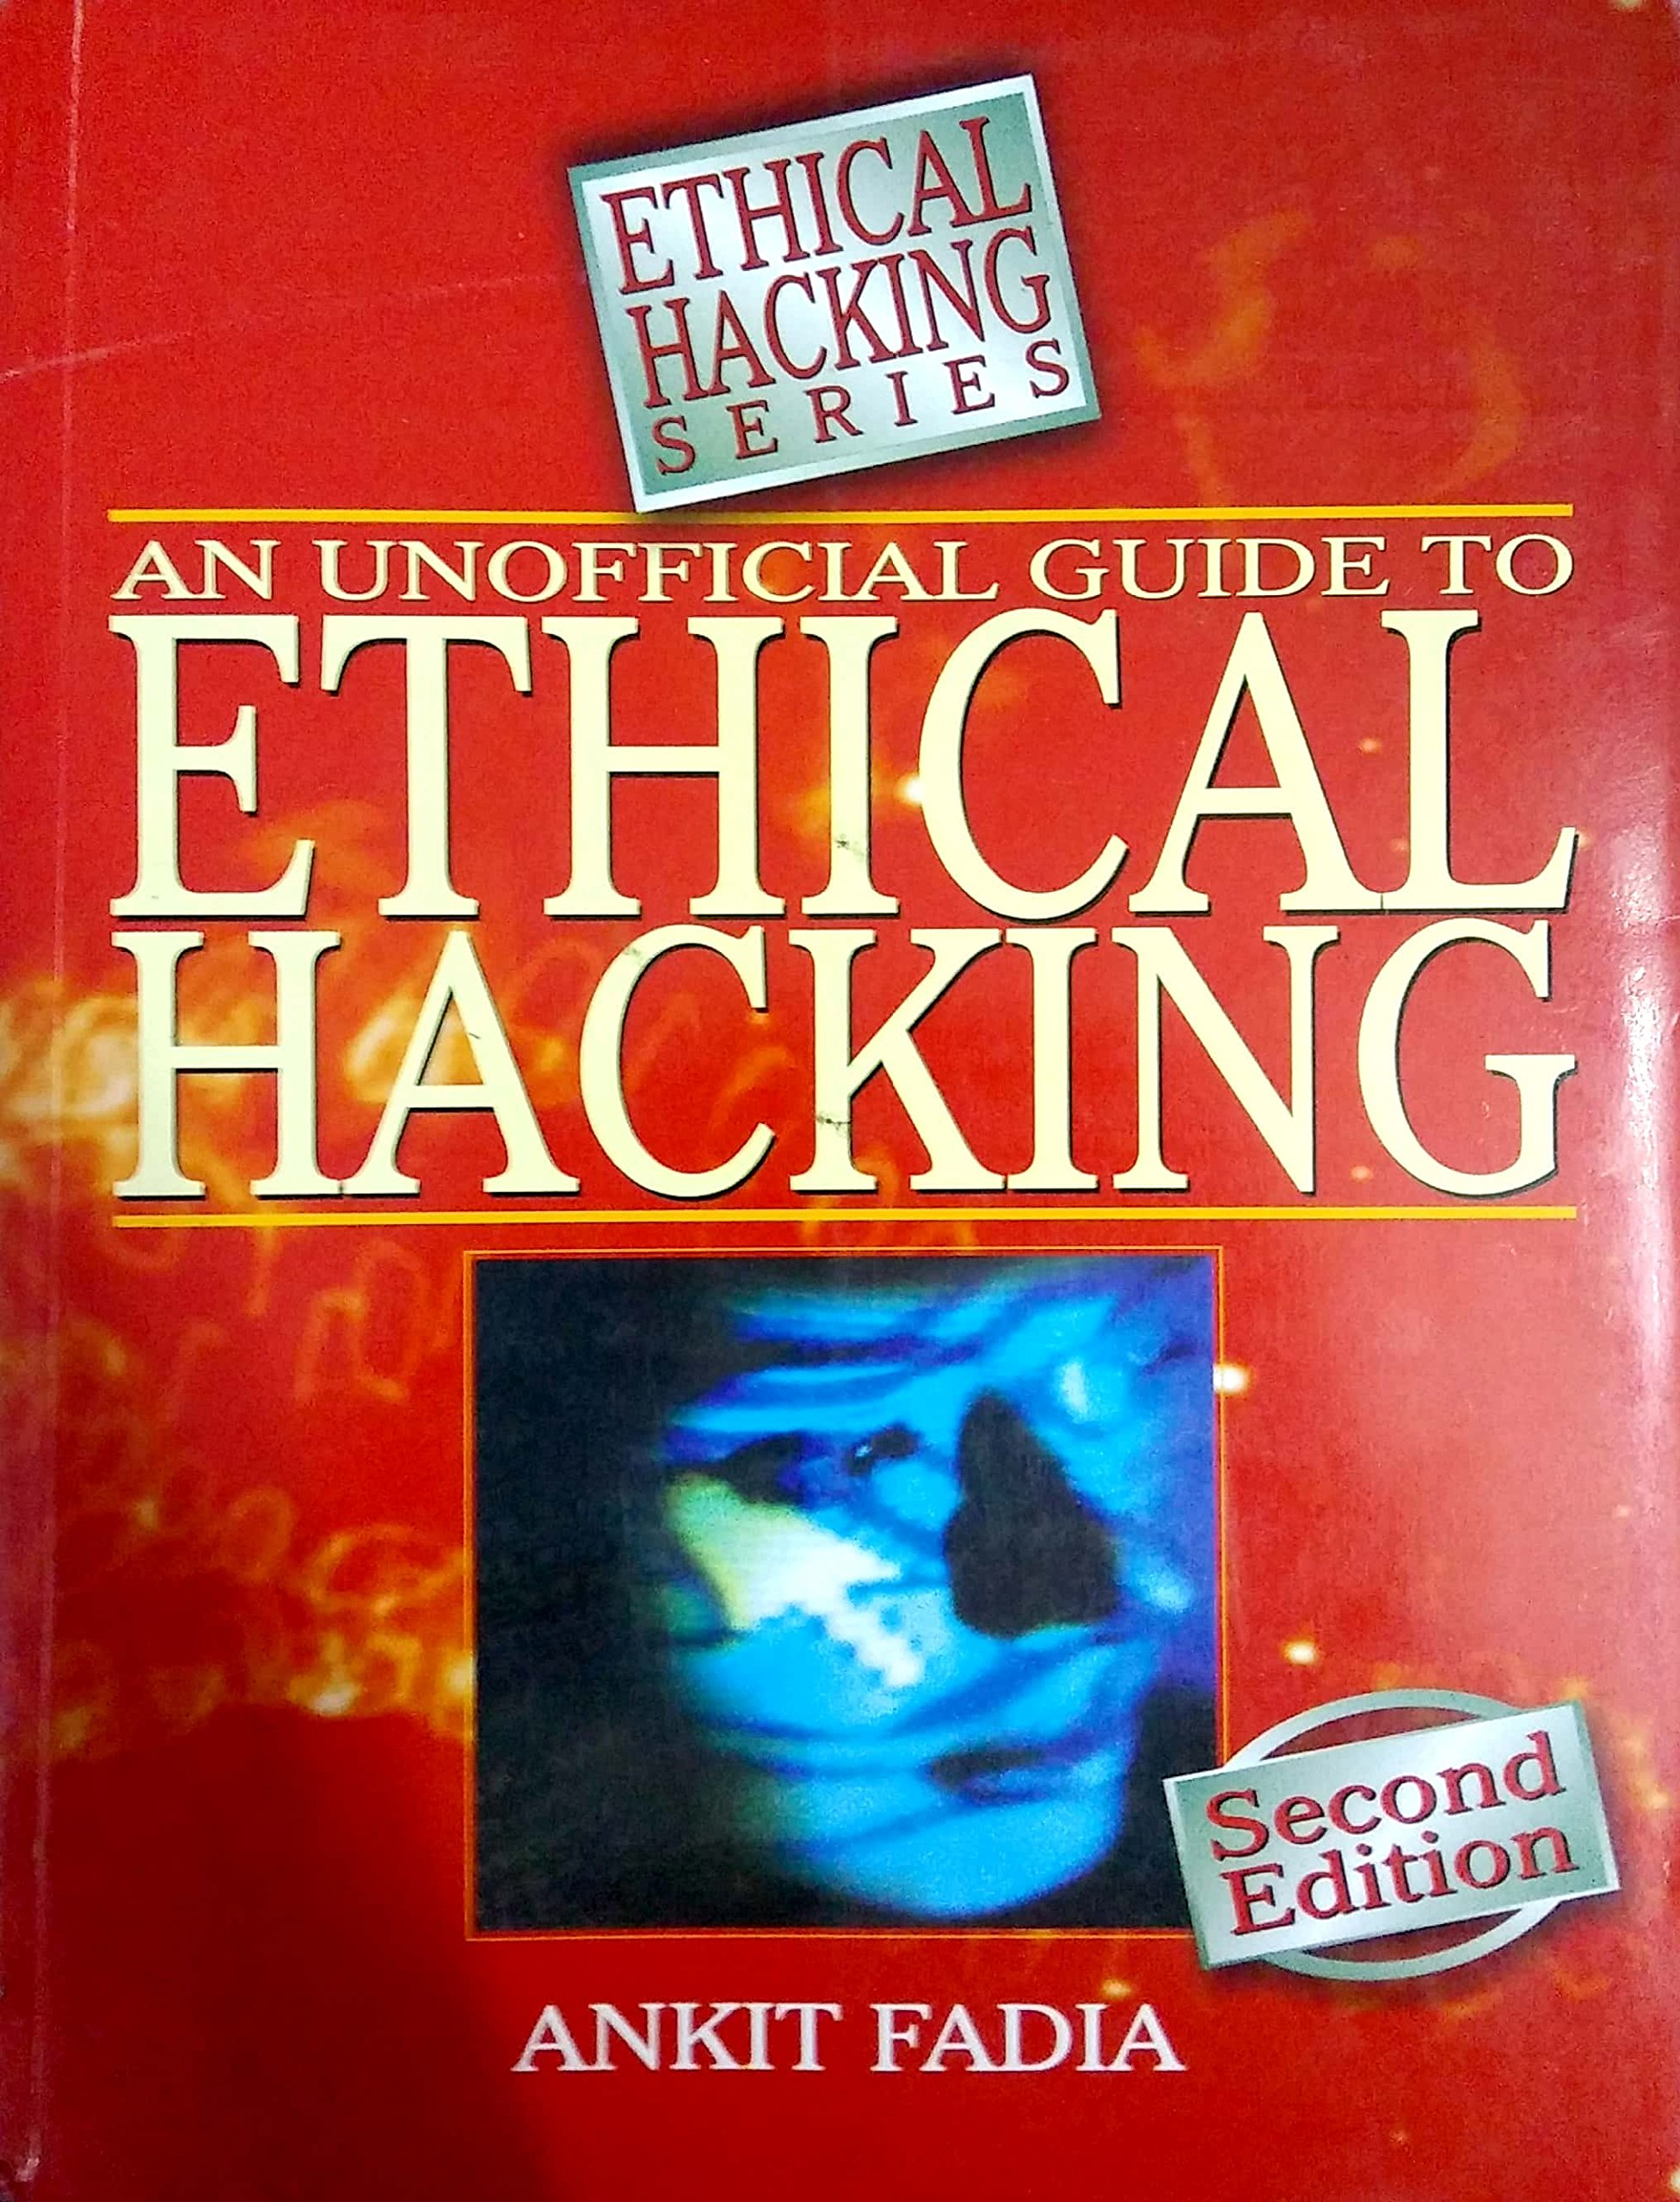 Amazon.in: Buy The Unofficial Guide to Ethical Hacking Book Online at Low  Prices in India | The Unofficial Guide to Ethical Hacking Reviews & Ratings